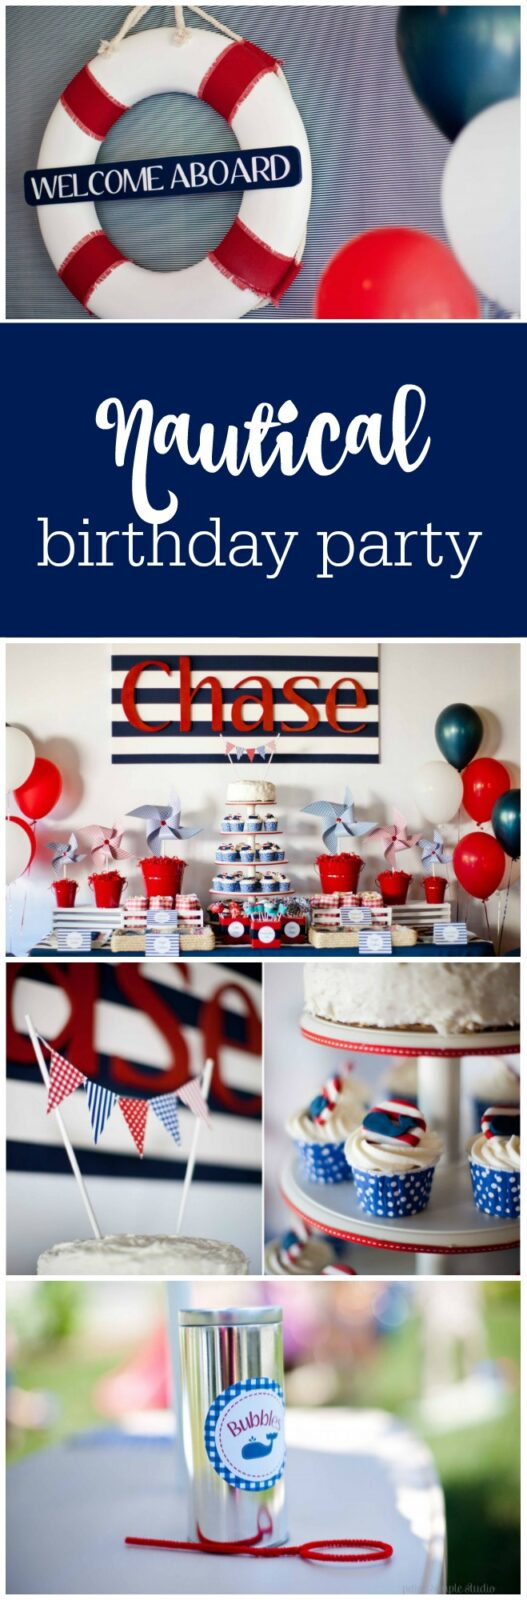 Nautical first birthday party by Paige Simple Studio featured on The Party Teacher